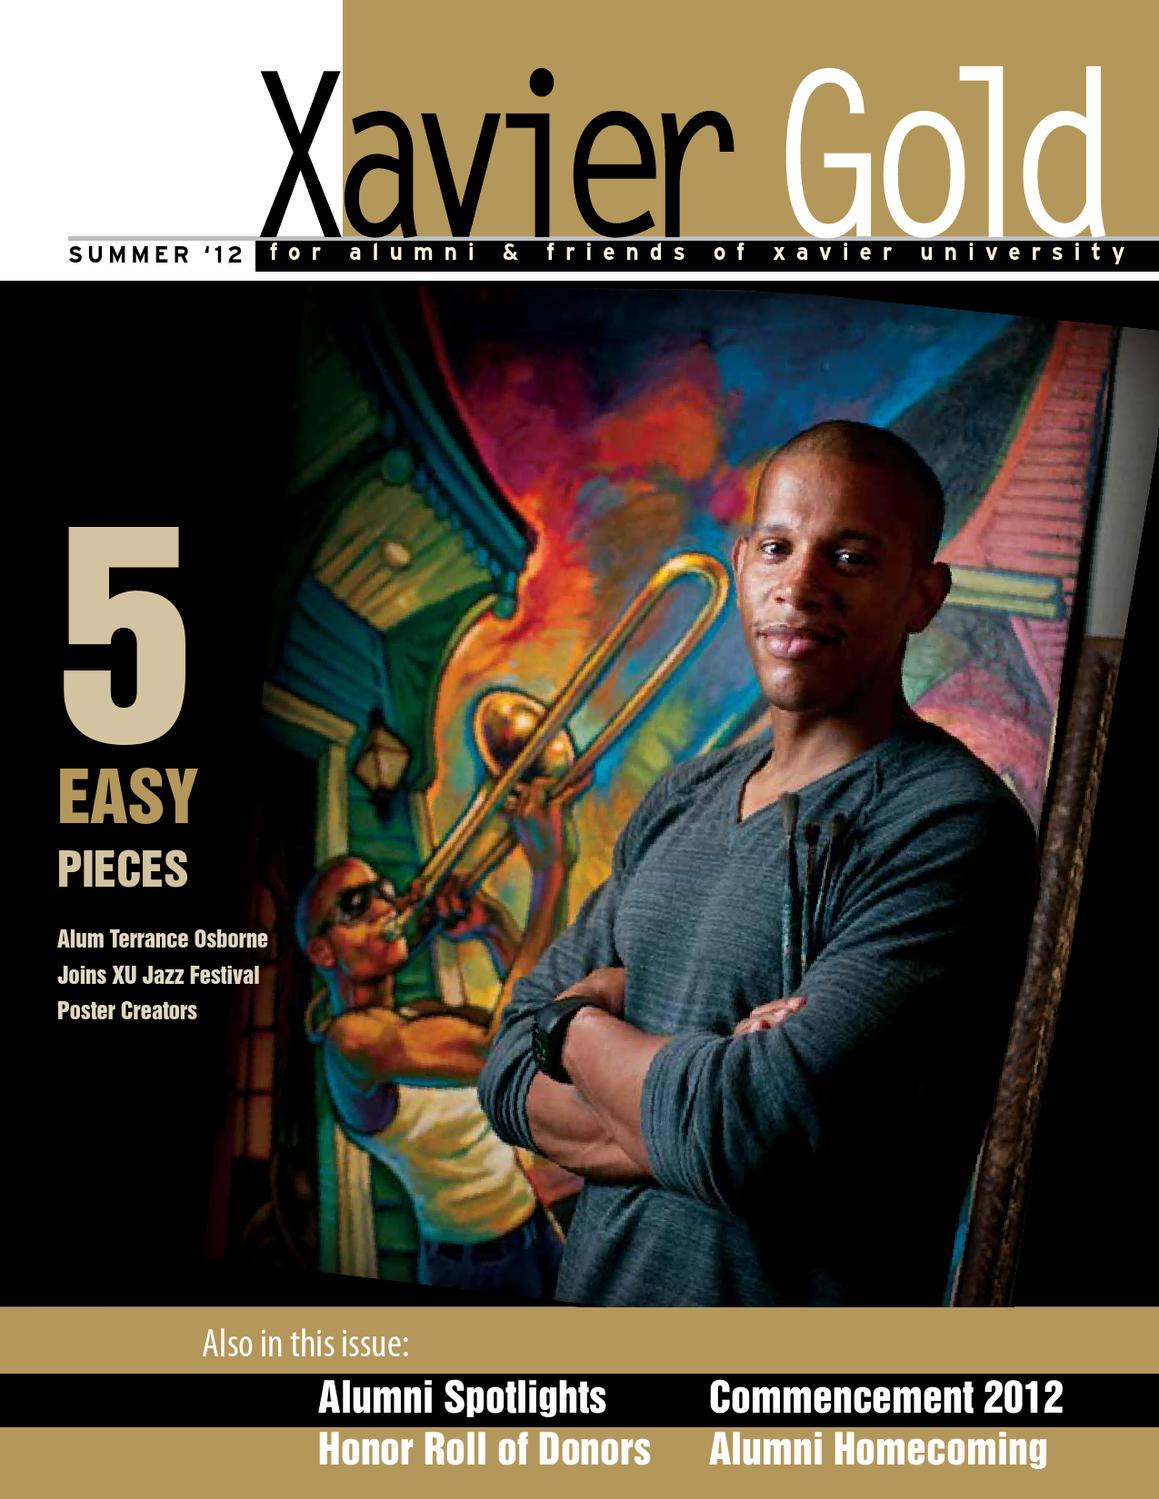 Xavier gold summer 2012 by brian bowers issuu fandeluxe Gallery